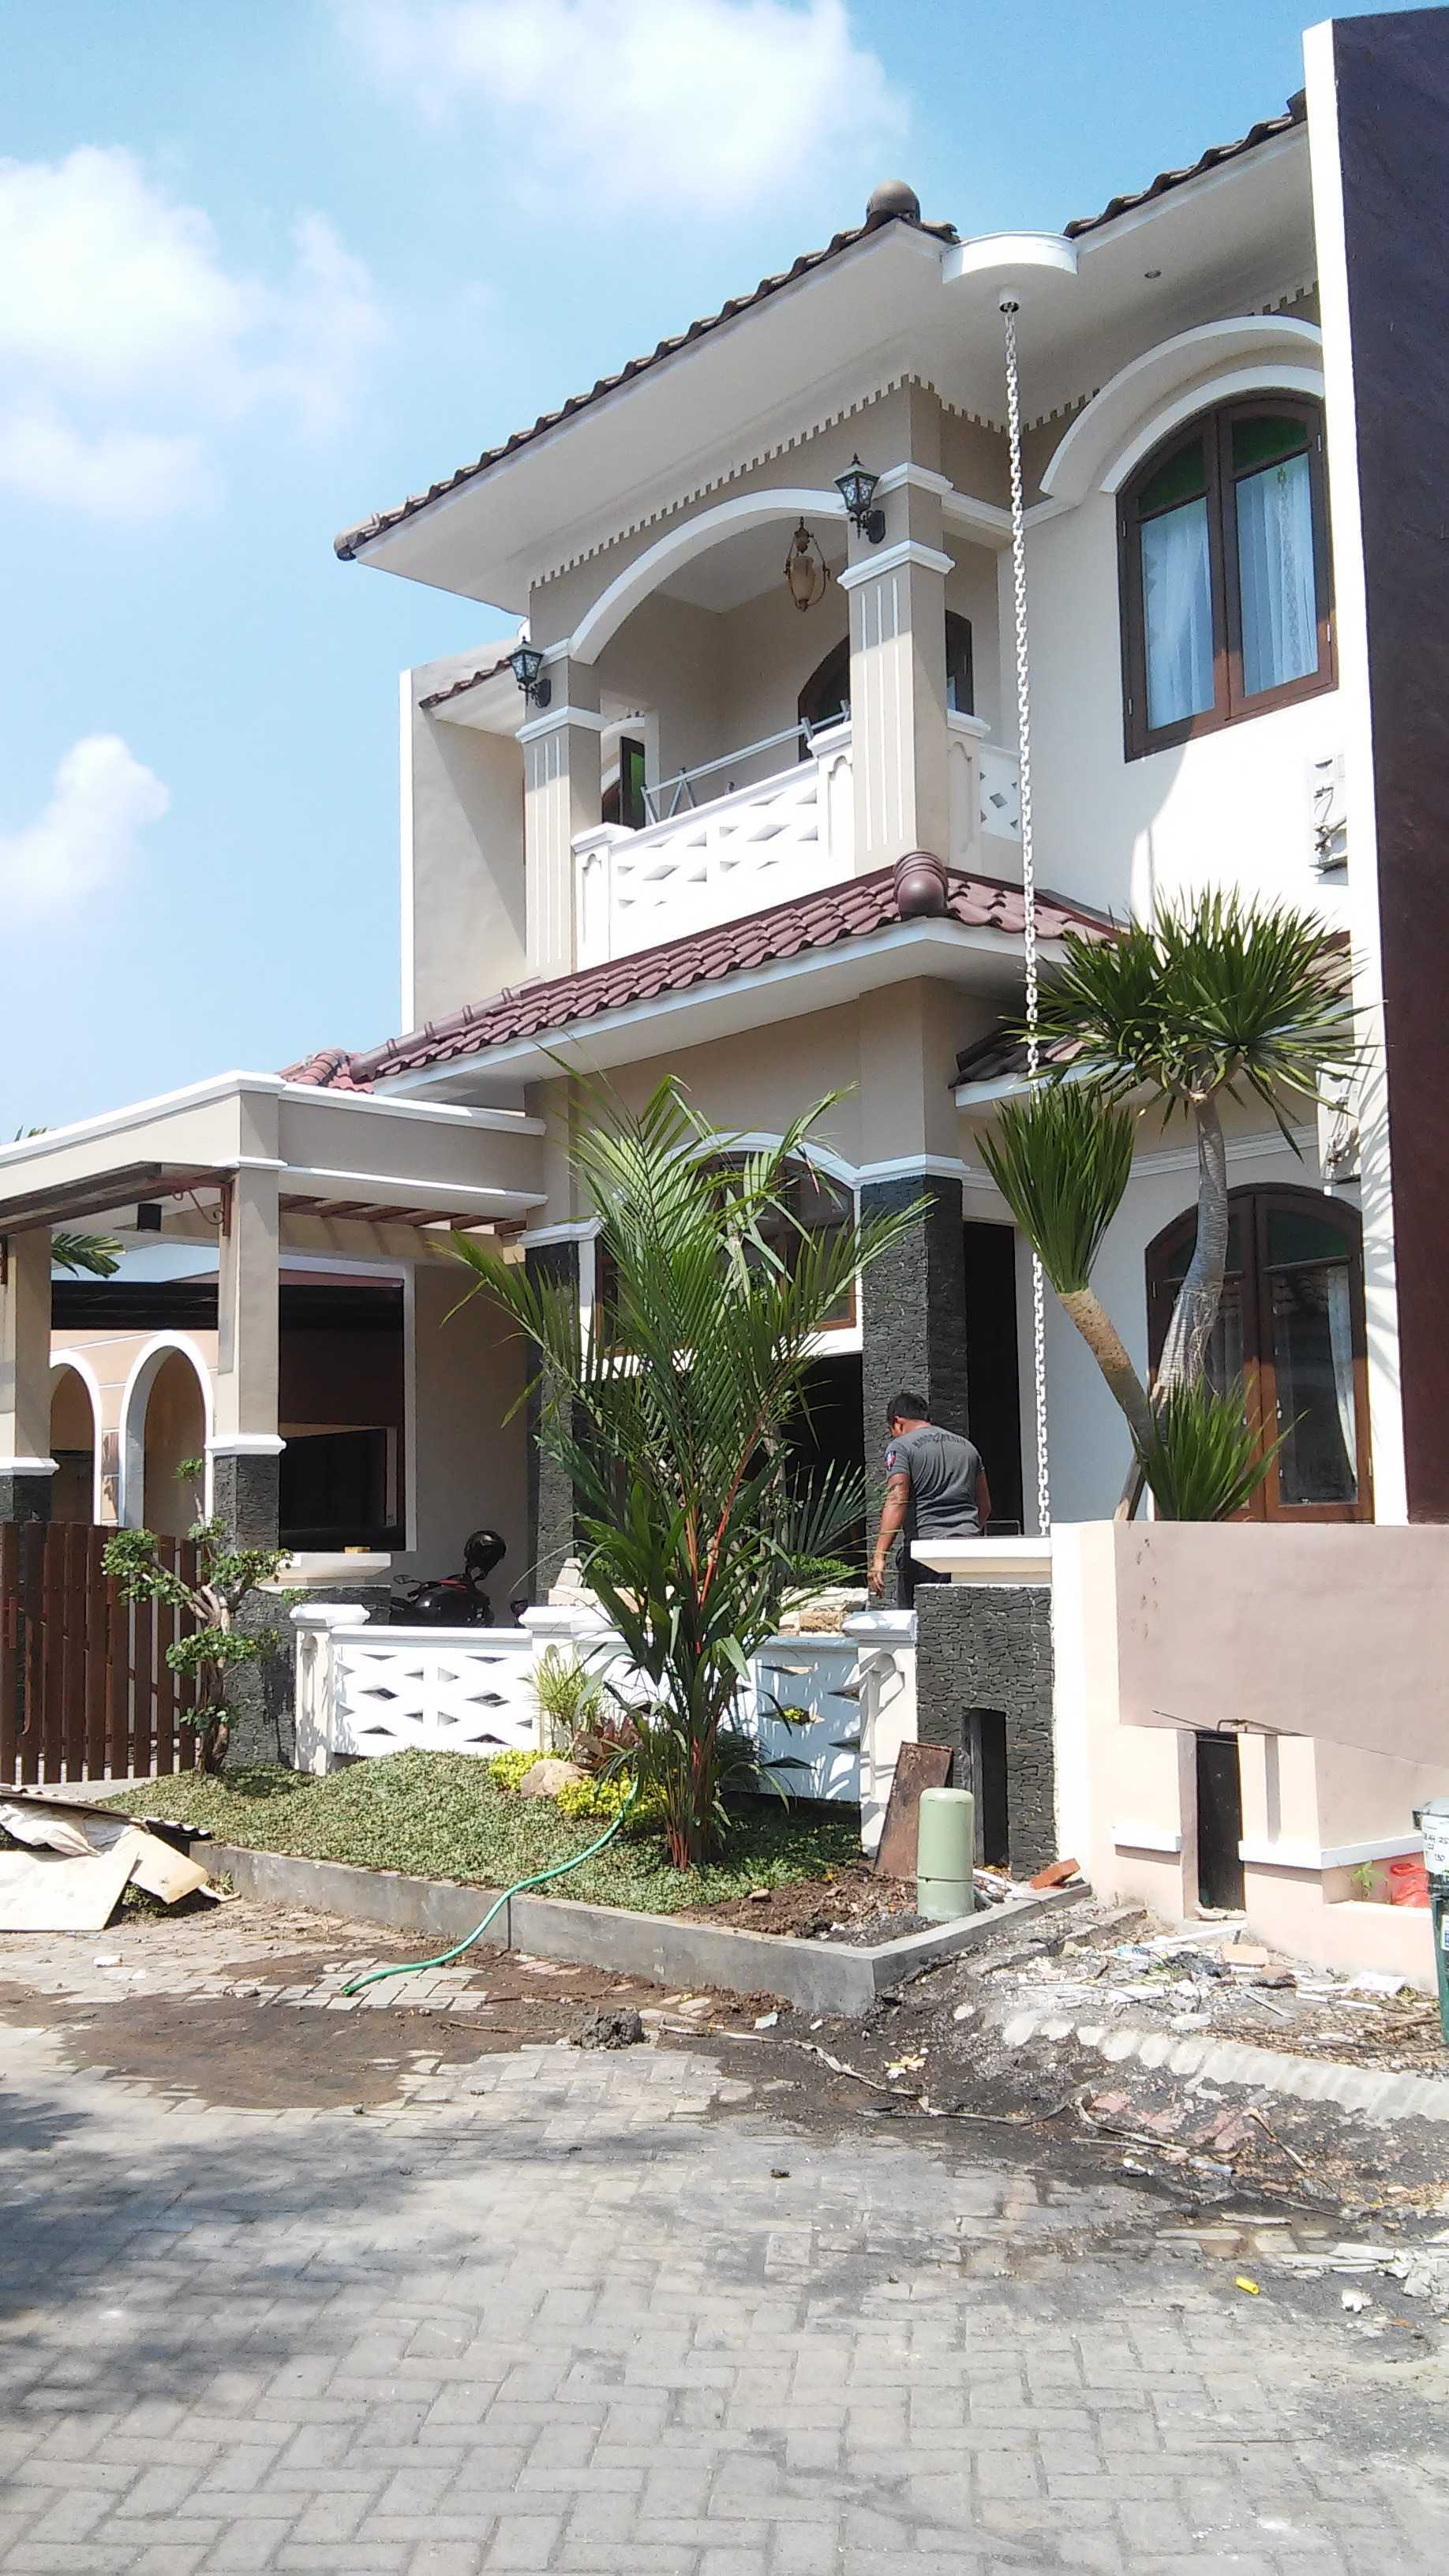 Arisza Housing Rumah Tinggal Tradisional Jl. Palm Raja Jambangan Selatan Iii Blok A-12, Palm Spring Regency, Jambangan, Surabaya City, East Java 60232, Indonesia Jl. Palm Raja Jambangan Selatan Iii Blok A-12, Palm Spring Regency, Jambangan, Surabaya City, East Java 60232, Indonesia Arisza-Housing-Rumah-Tinggal-Tradisional   101995